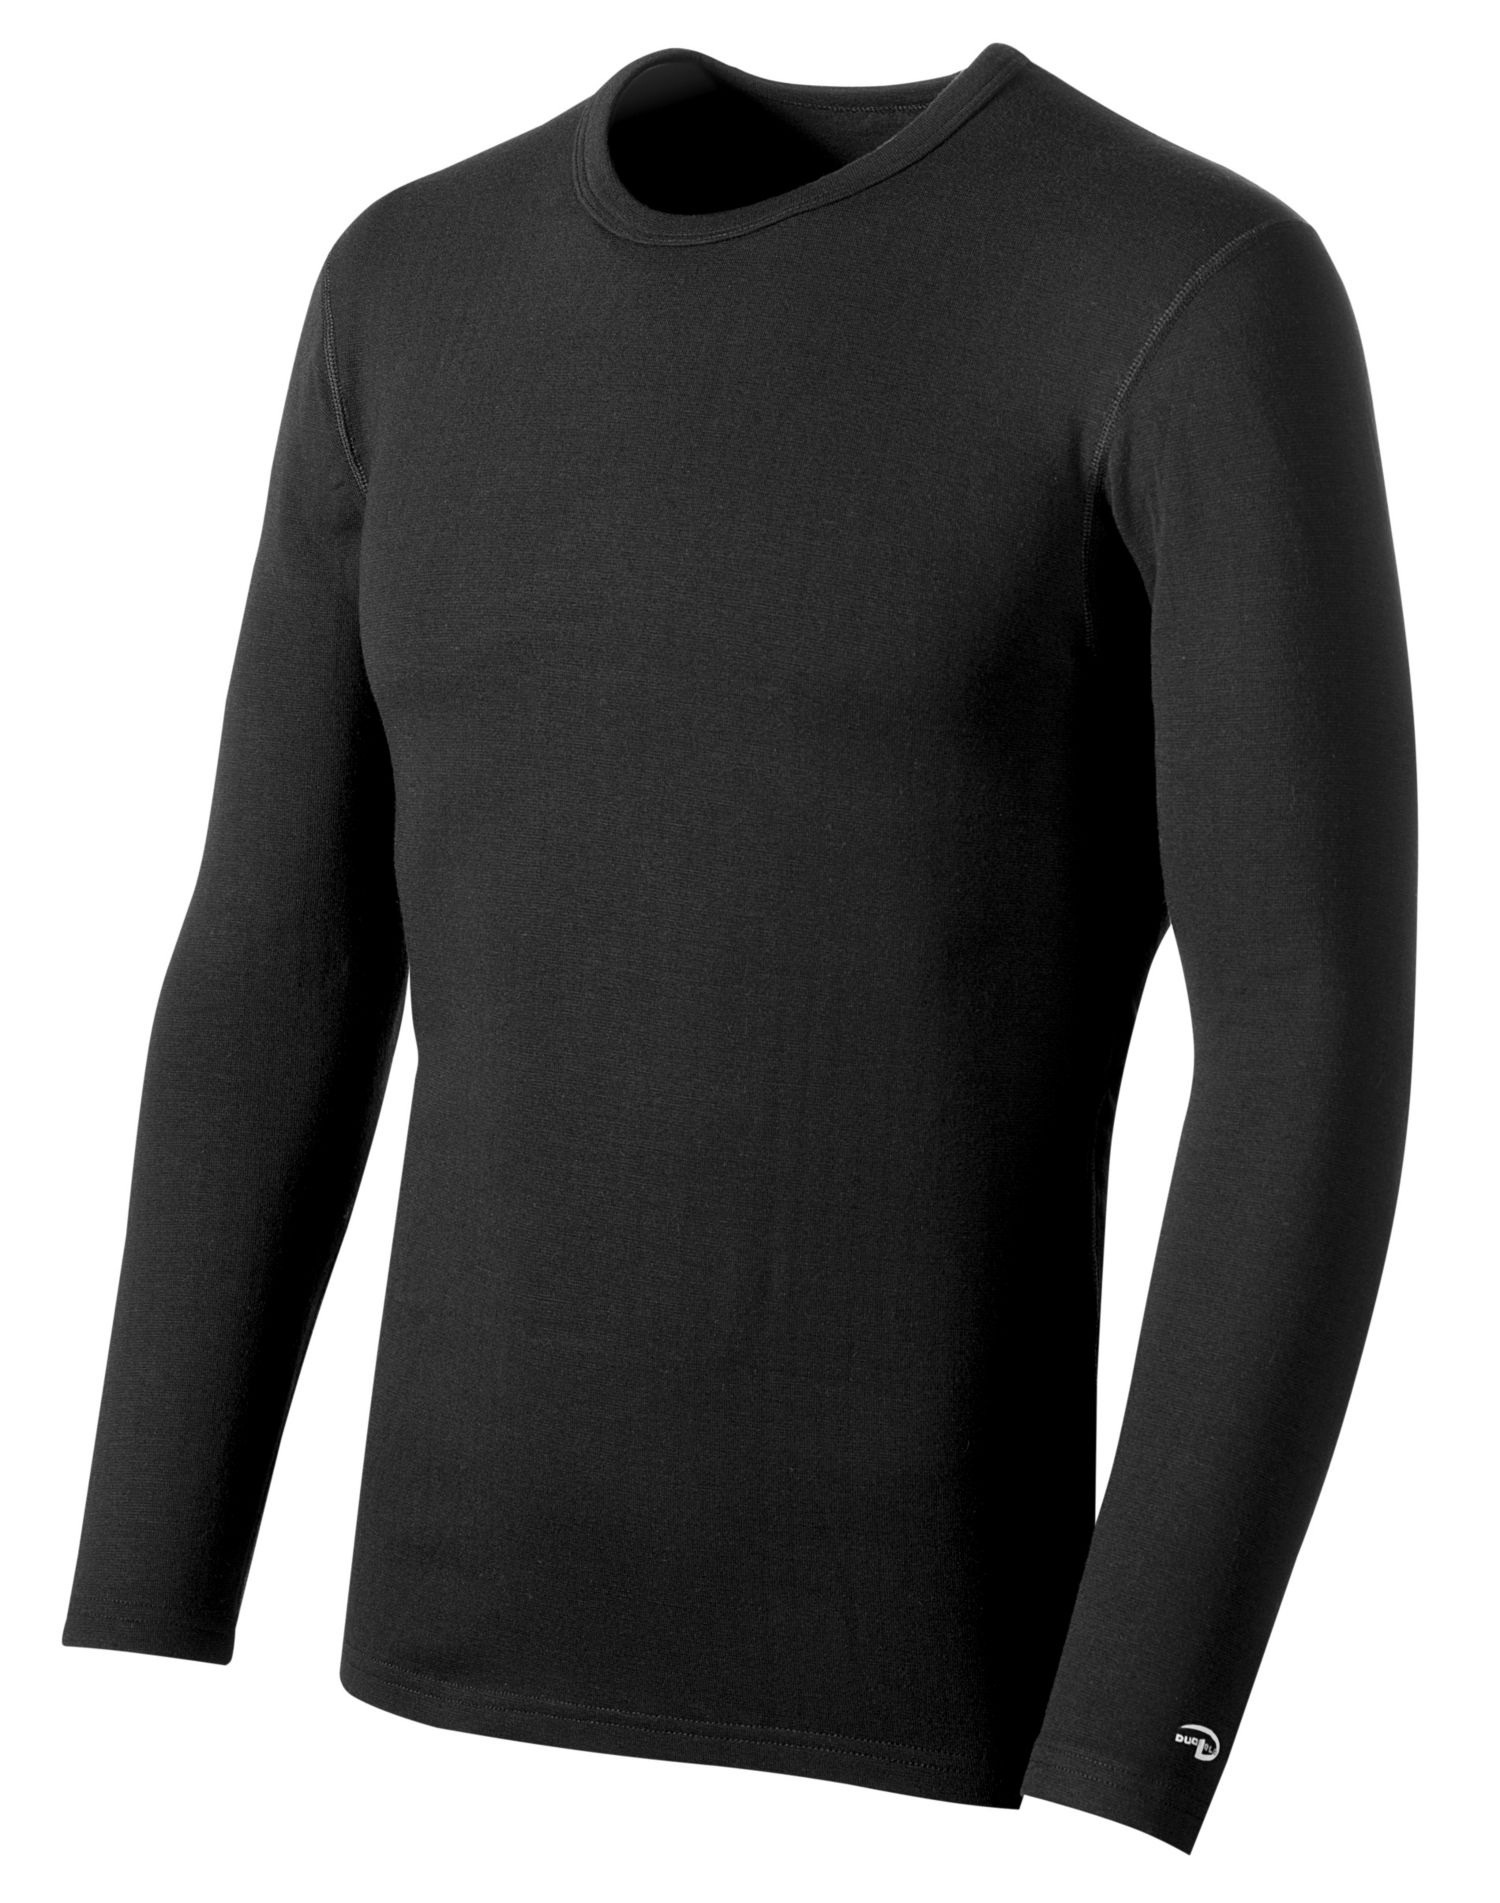 Discover the best Men's Thermal Underwear Tops in Best Sellers. Find the top most popular items in Amazon Best Sellers. Hat and Beyond KS Mens Thermal Heavyweight T Shirts Long Sleeve Soft Cotton Crew Neck Big and Tall Knits out of 5 stars 6. $ - $ # Hanes Men's Red Label X-Temp Thermal Long Sleeve Crew Top.